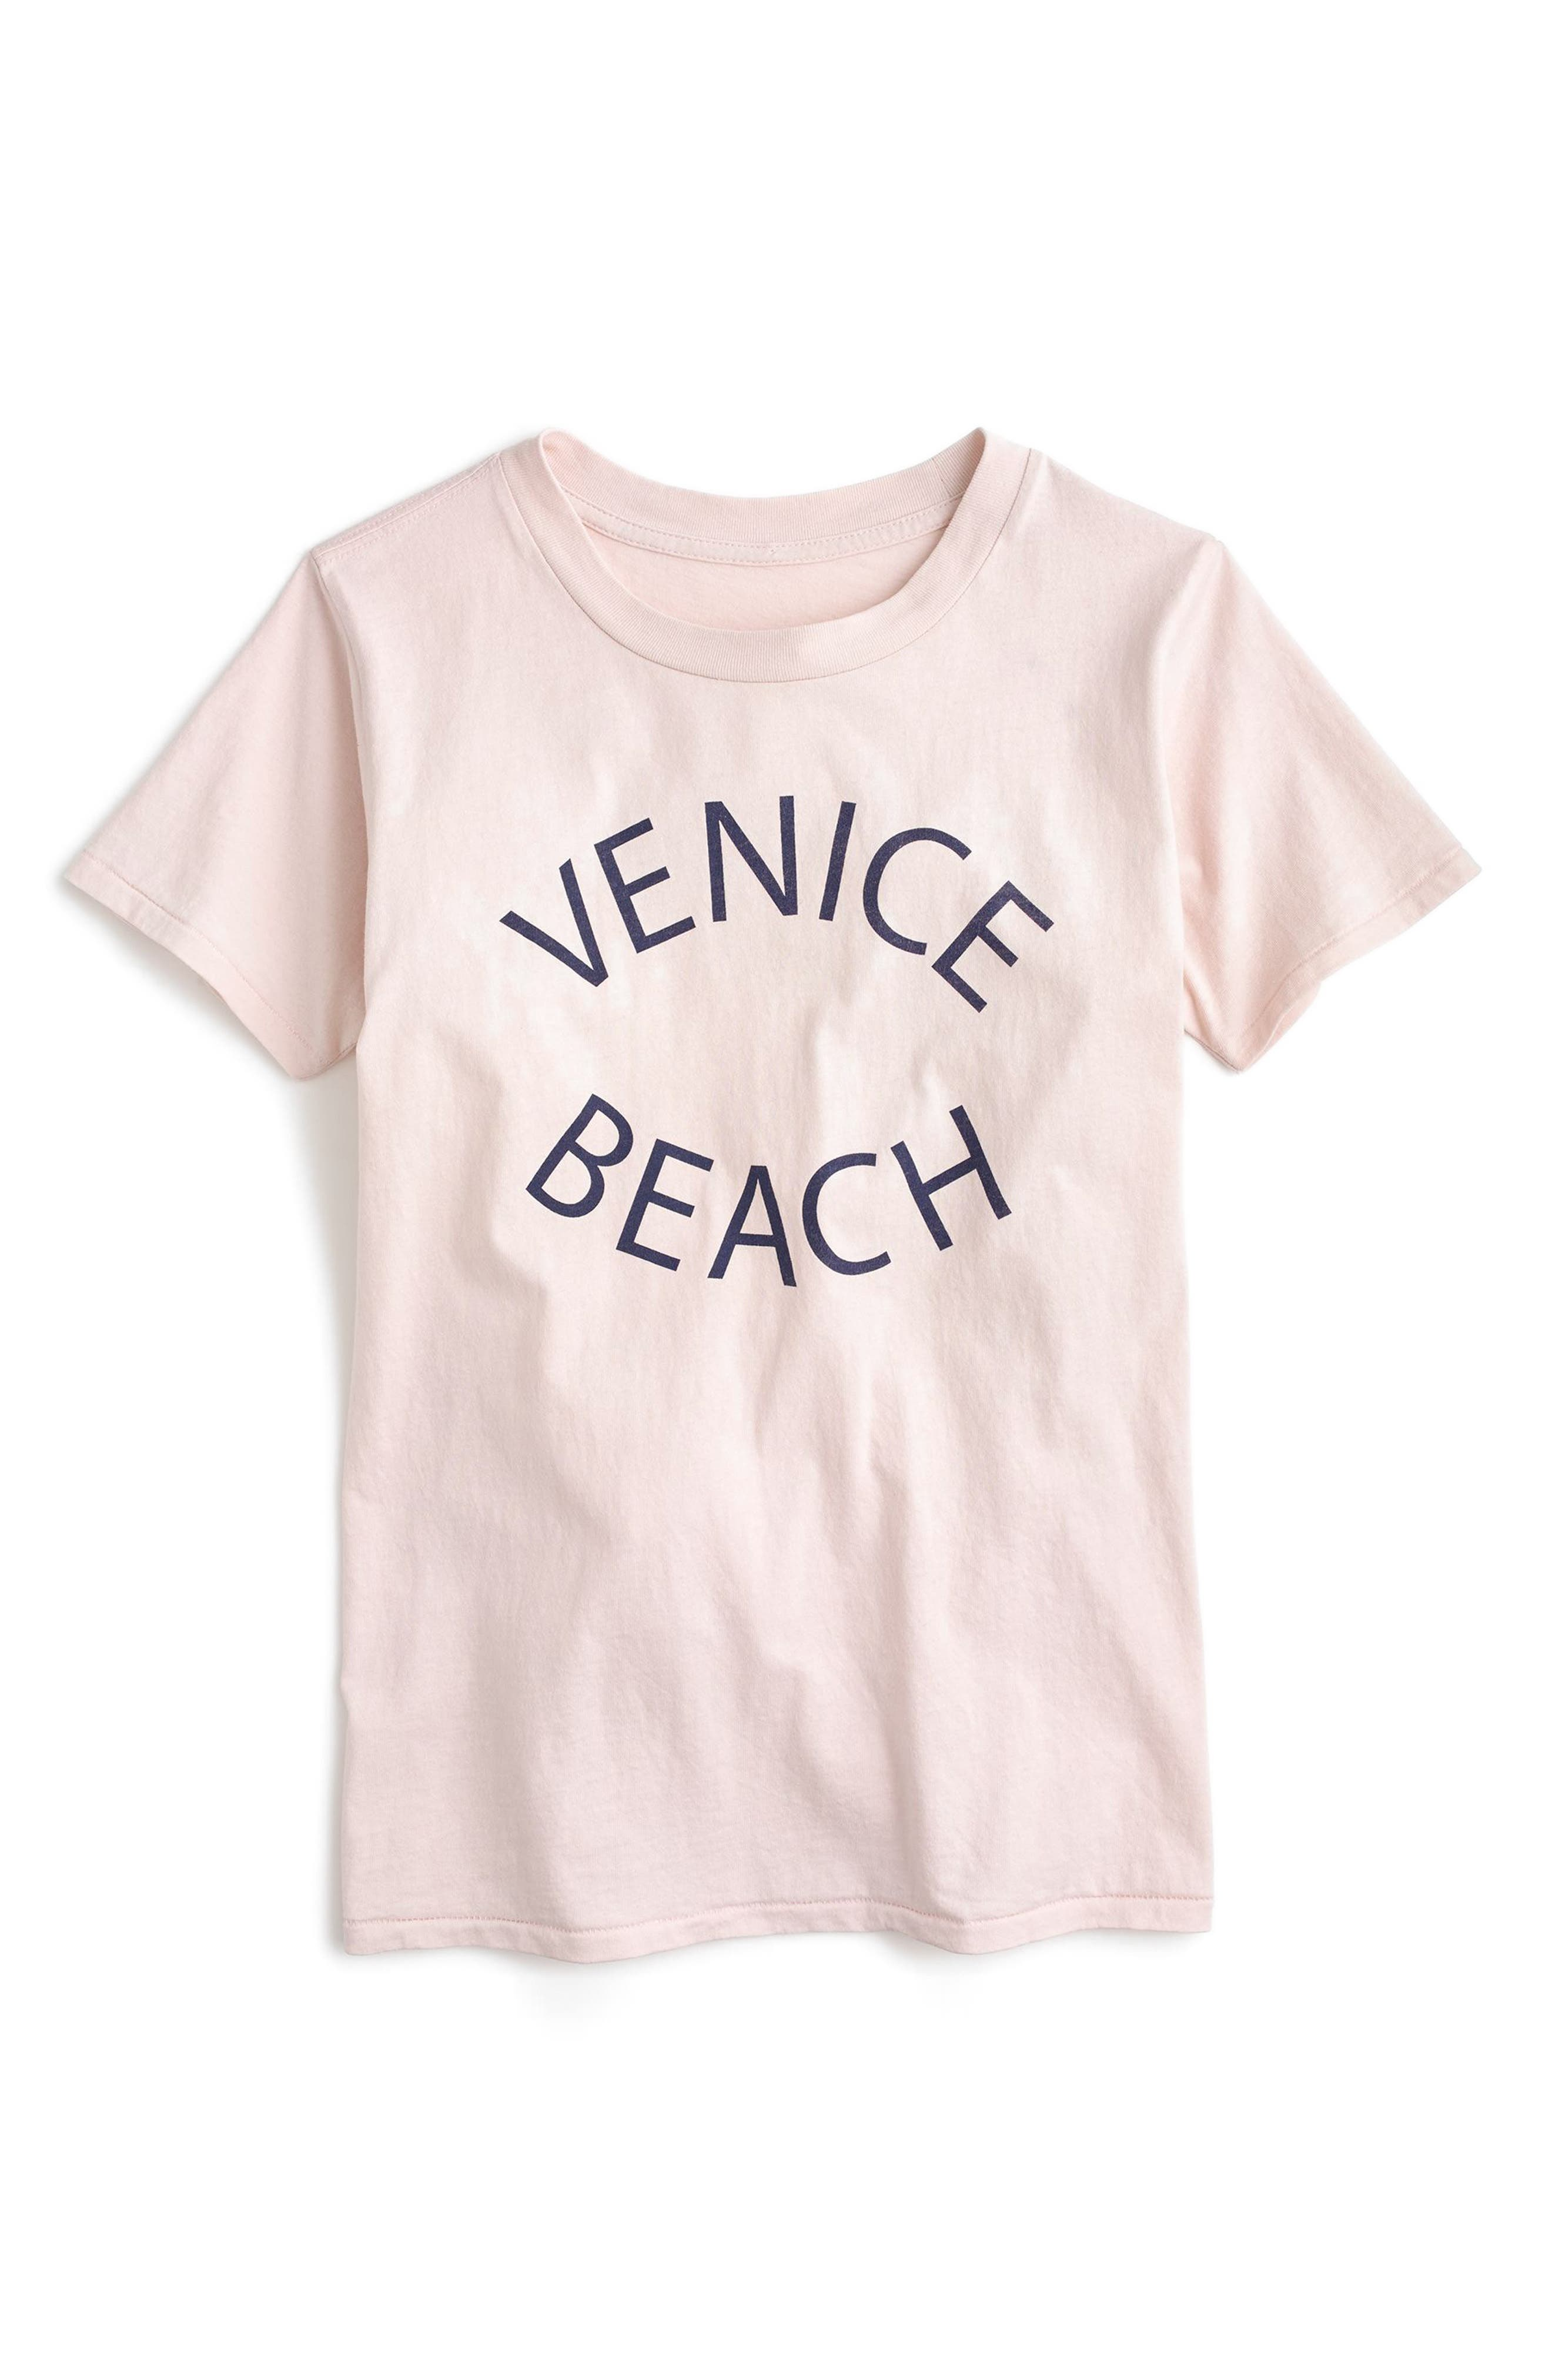 J.Crew Venice Beach Graphic Tee,                         Main,                         color, Picturesque Pink